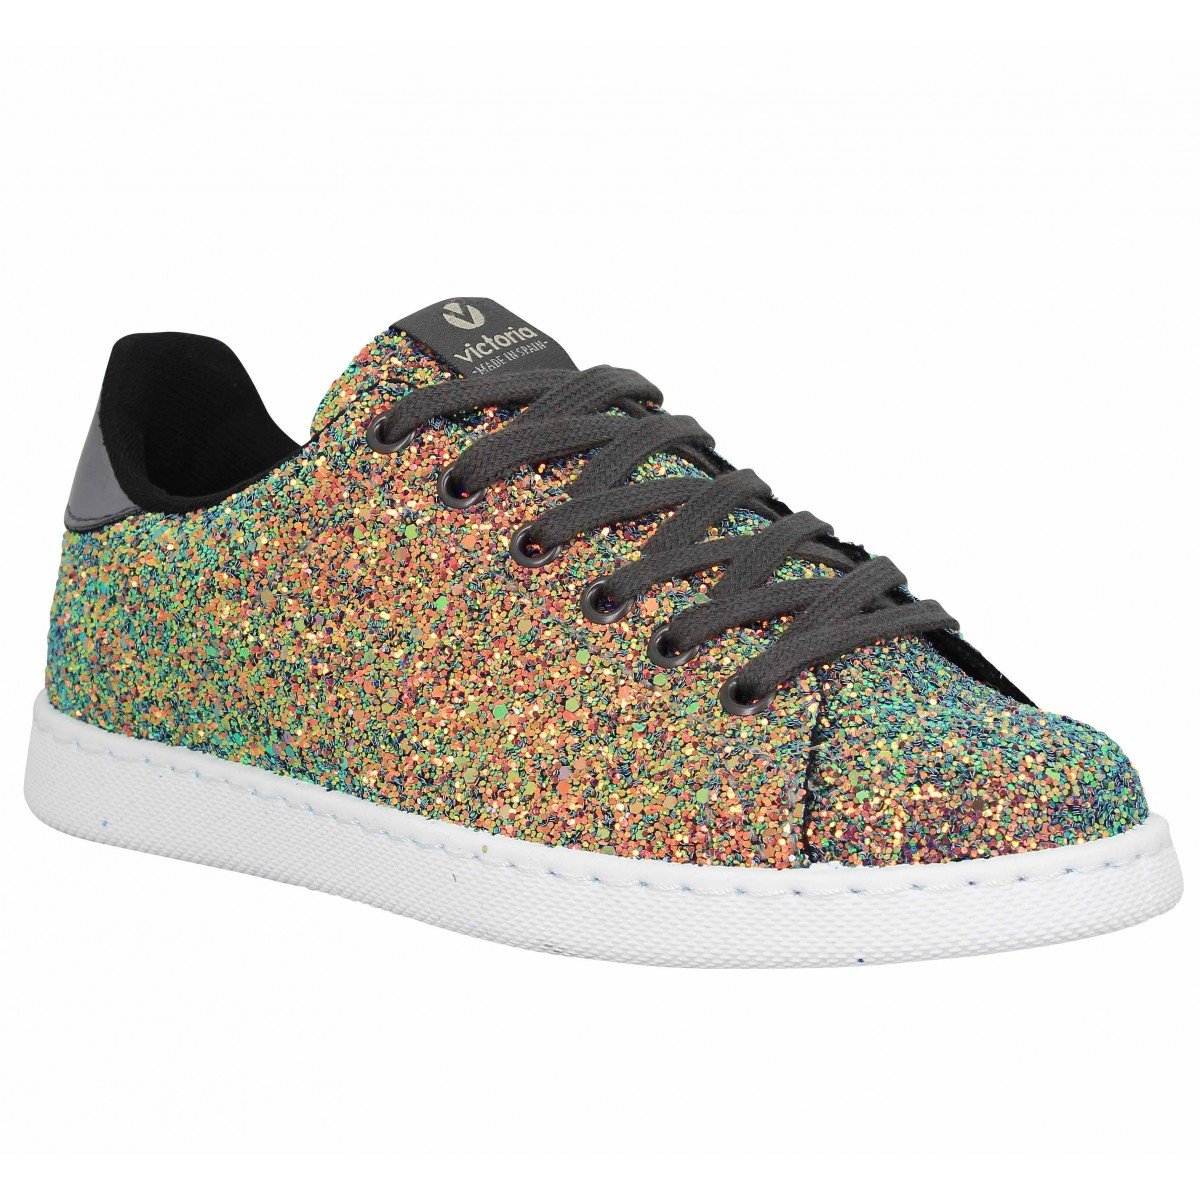 Baskets VICTORIA 12516 full glitter Femme Or